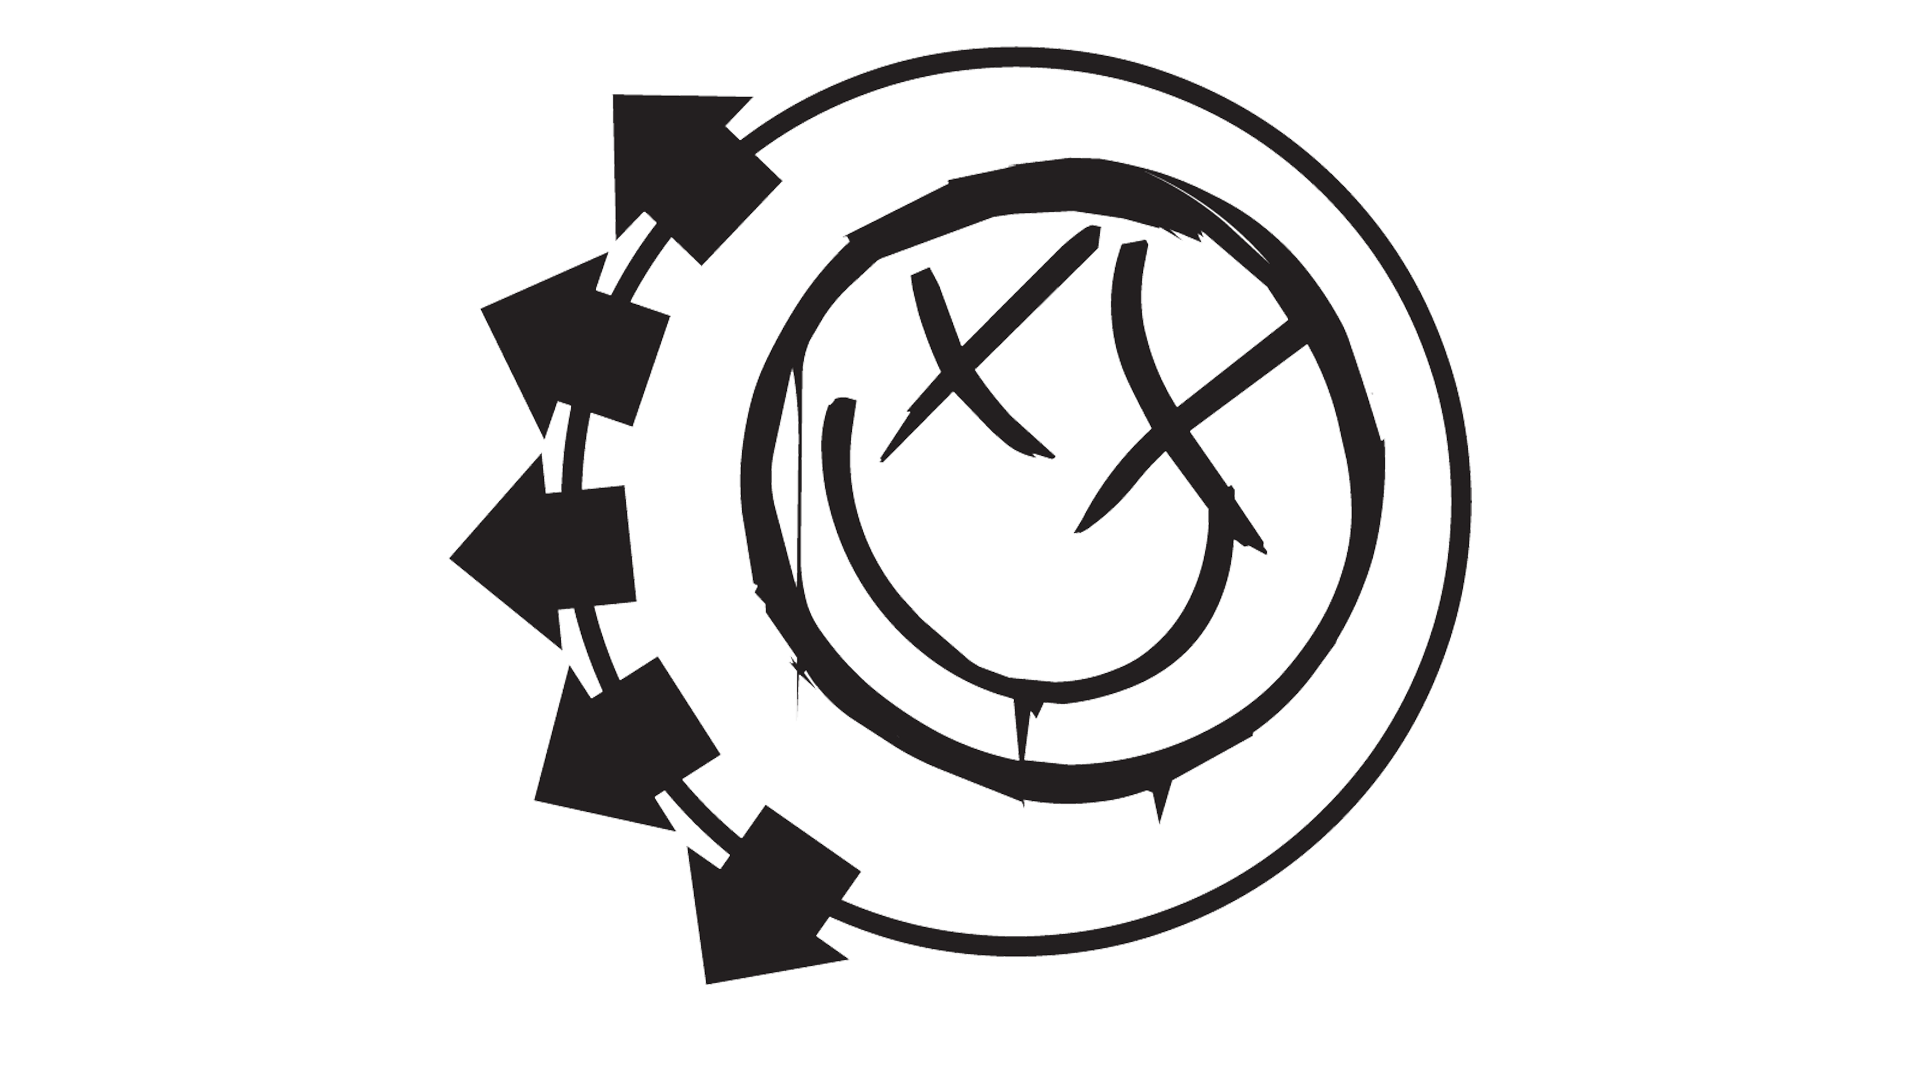 Blink 182 Logo, Blink 182 Symbol, Meaning, History and ...